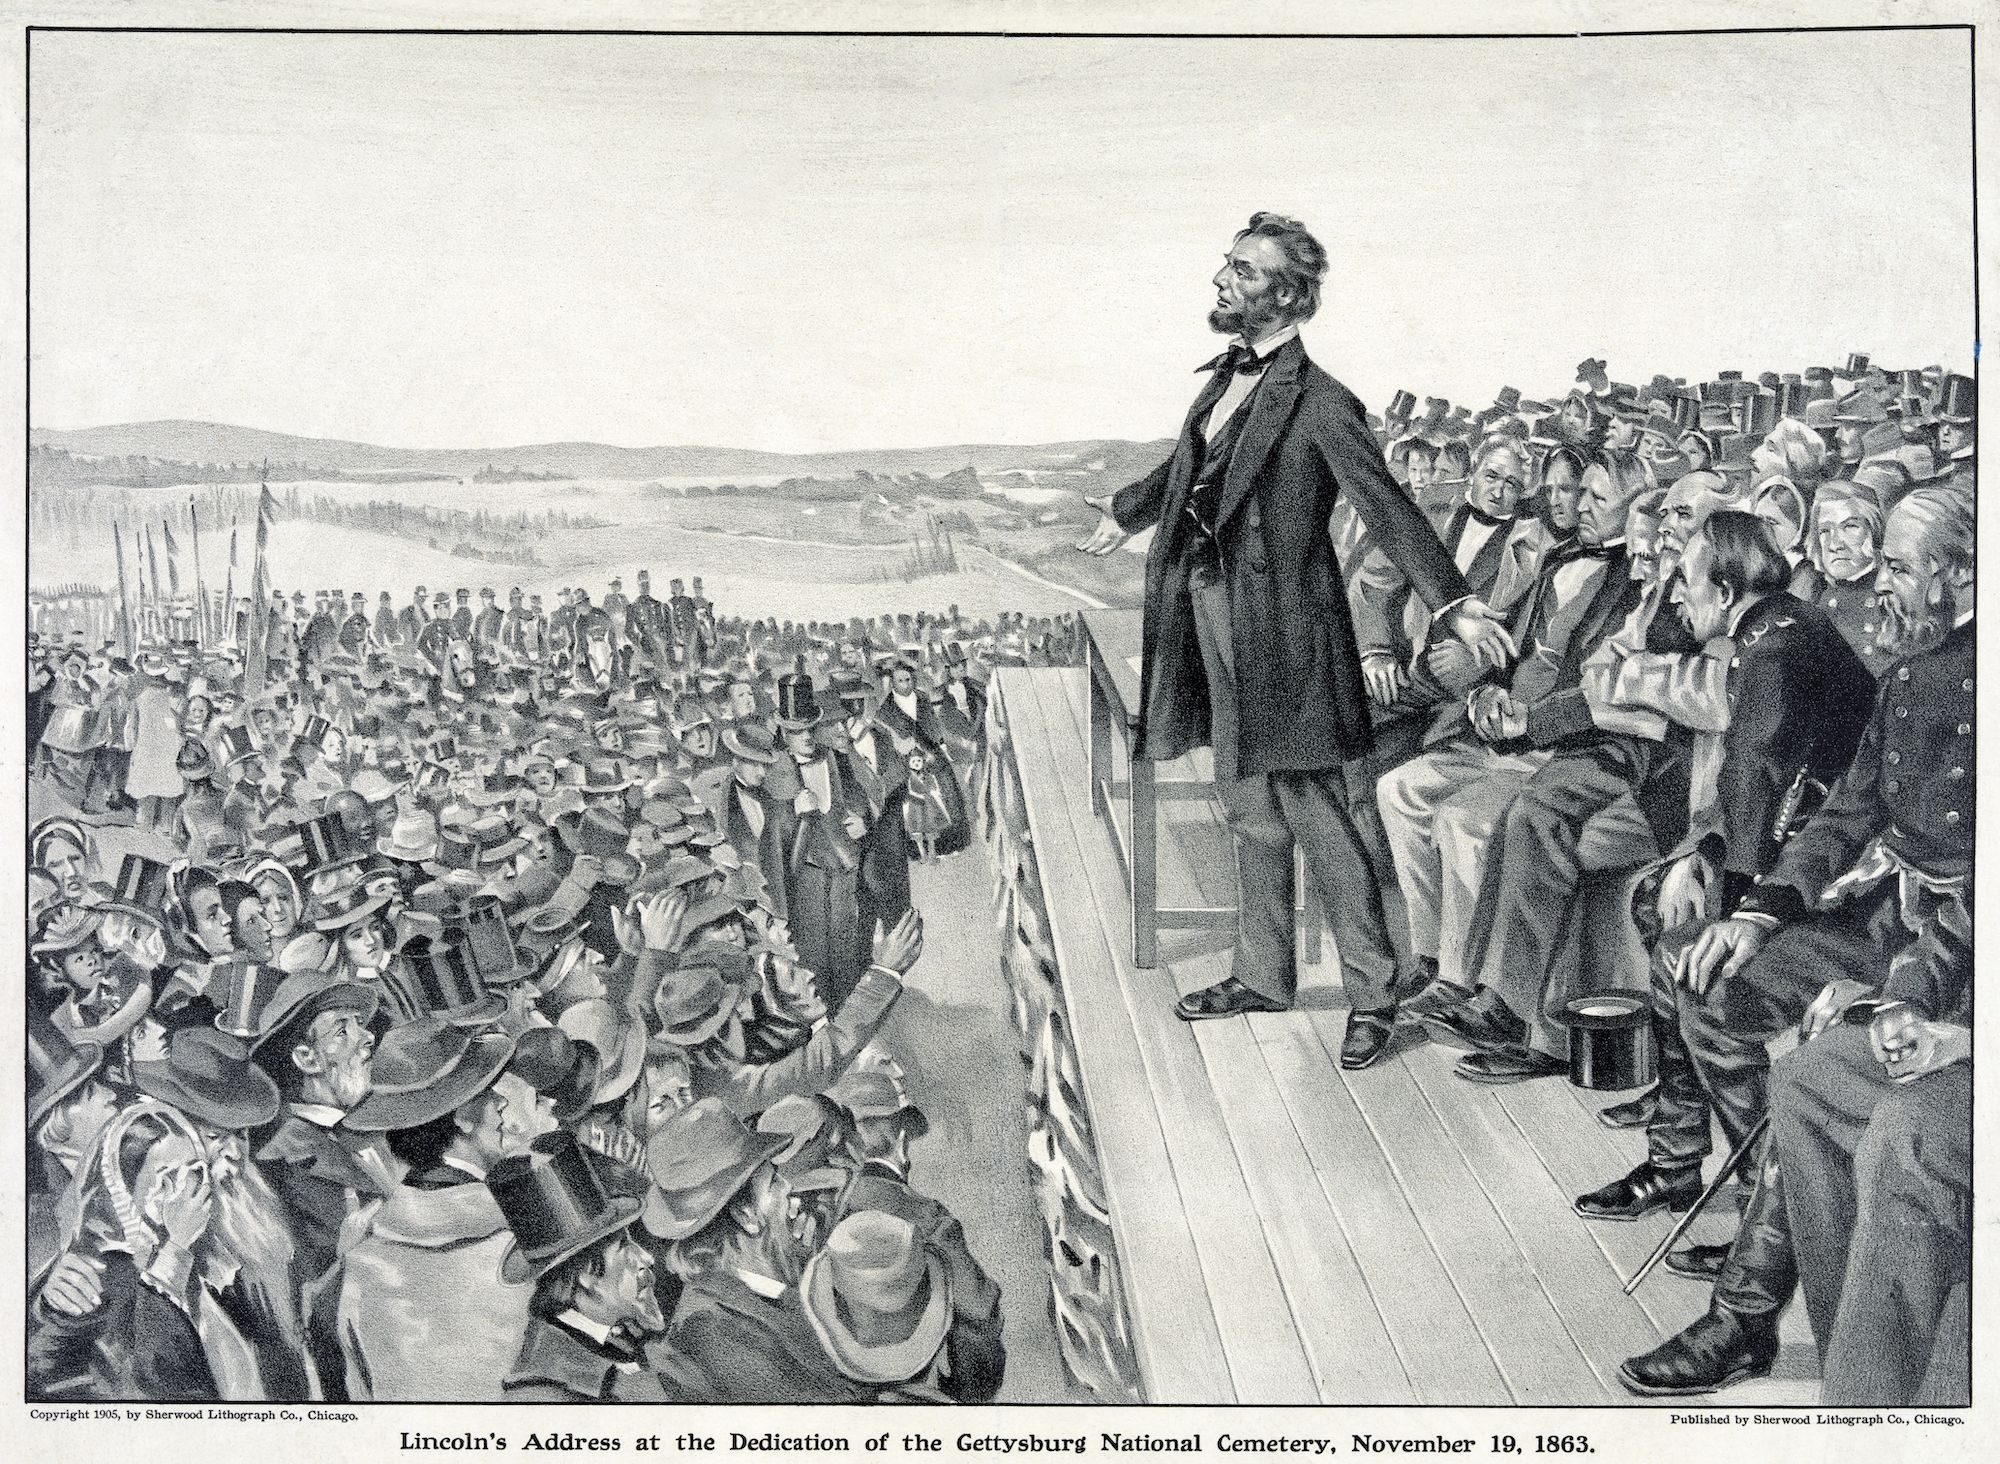 Lincoln's Gettysburg Address NatGeo Image One